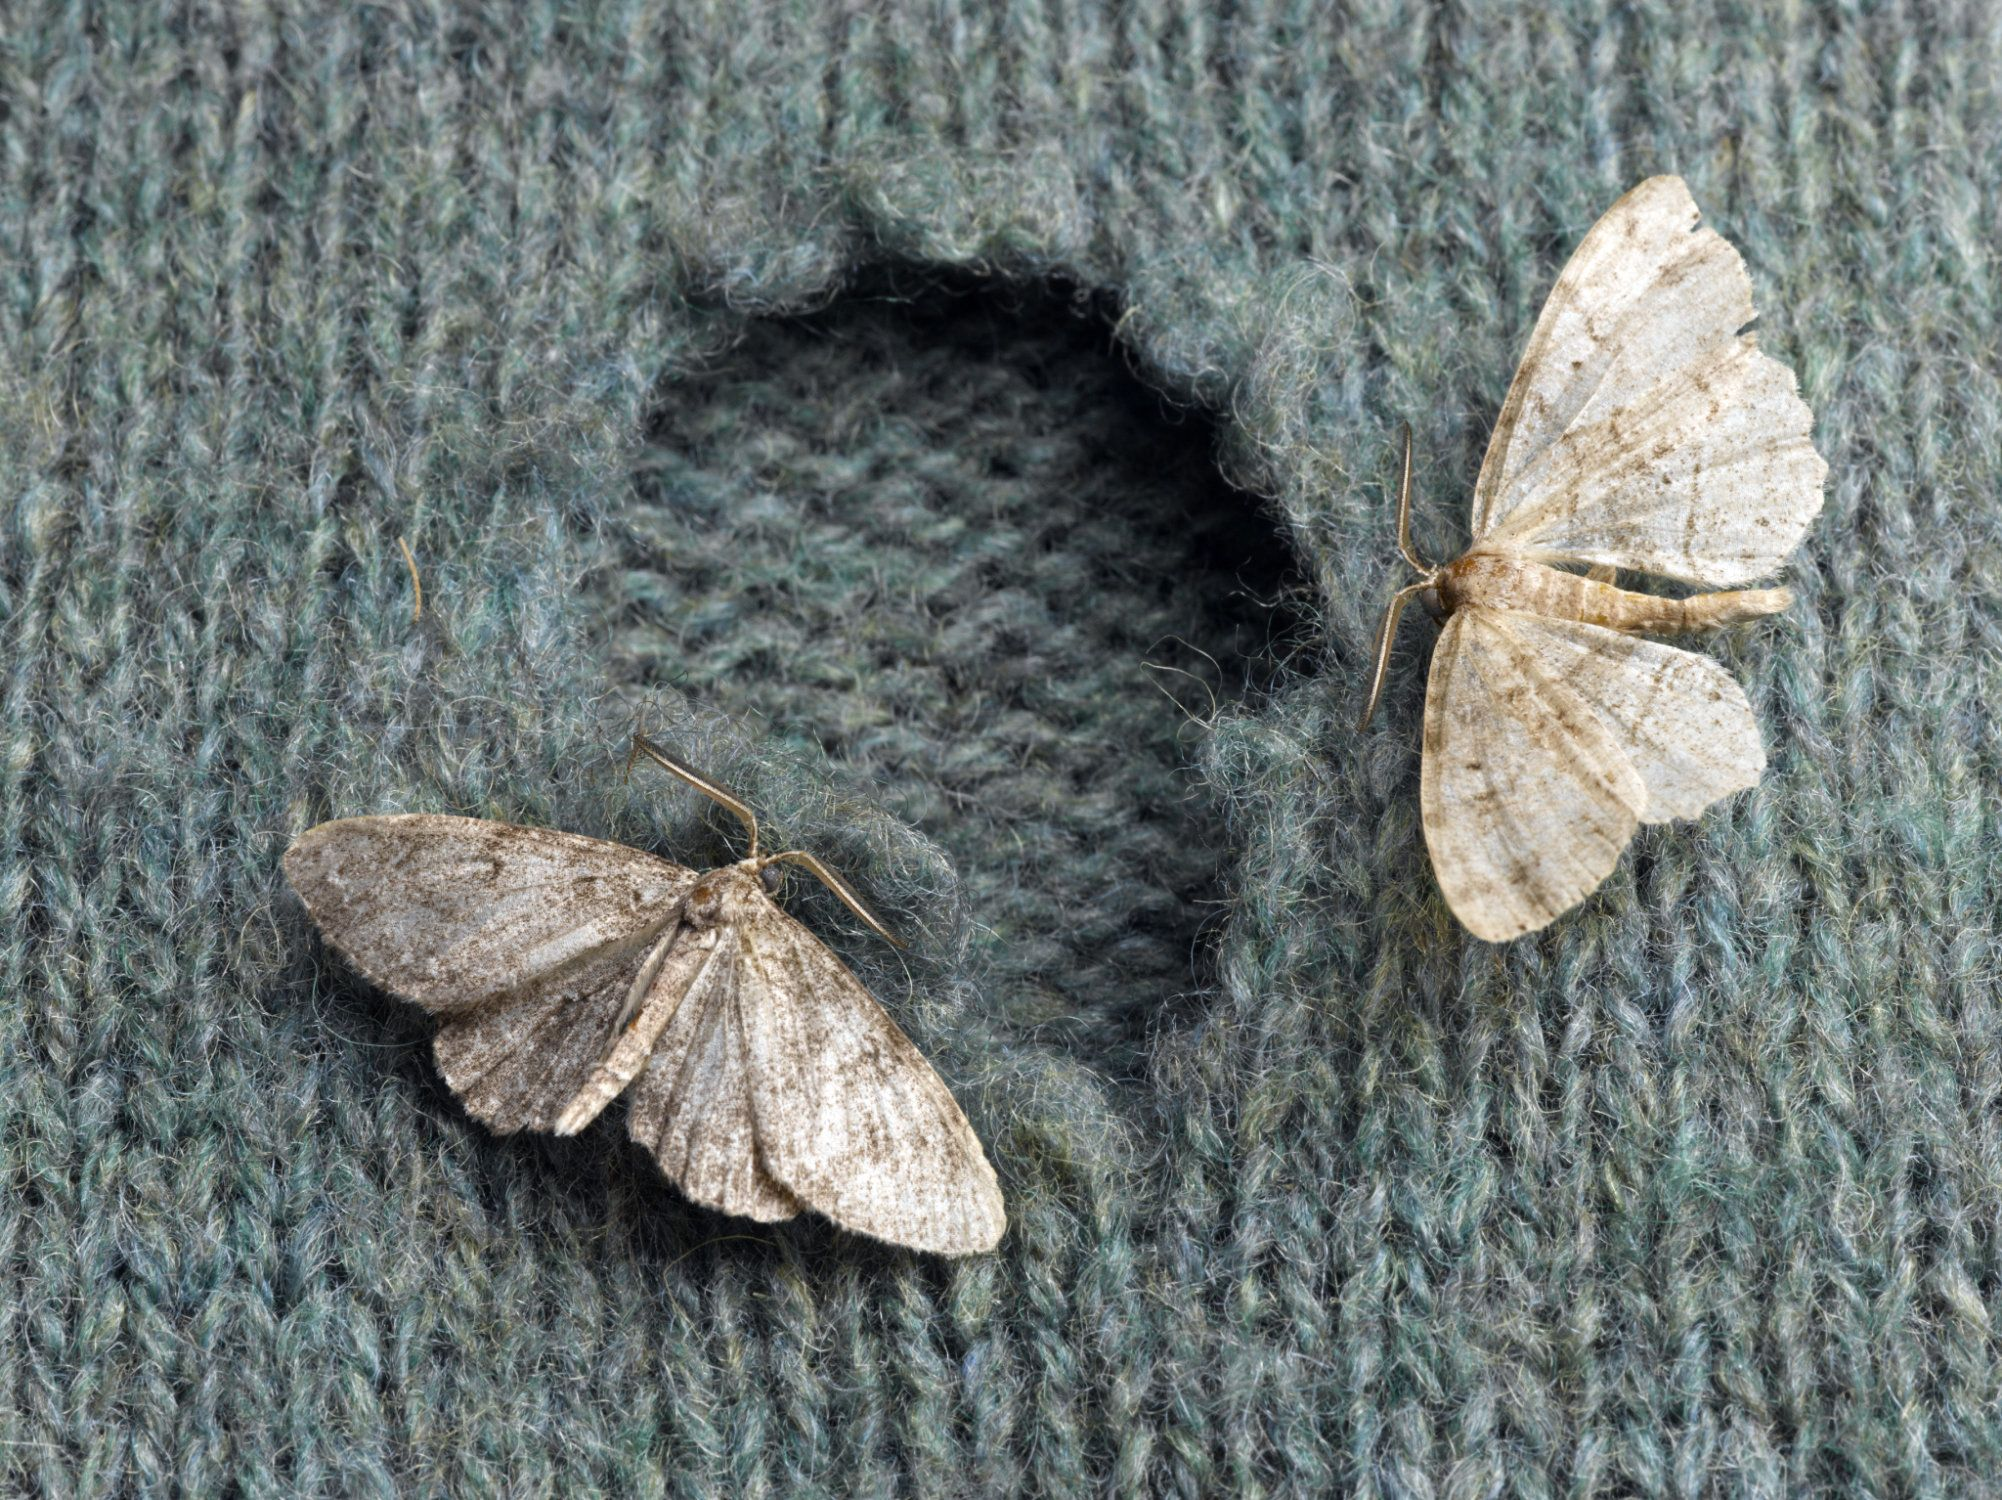 Moths on Wool Sweater